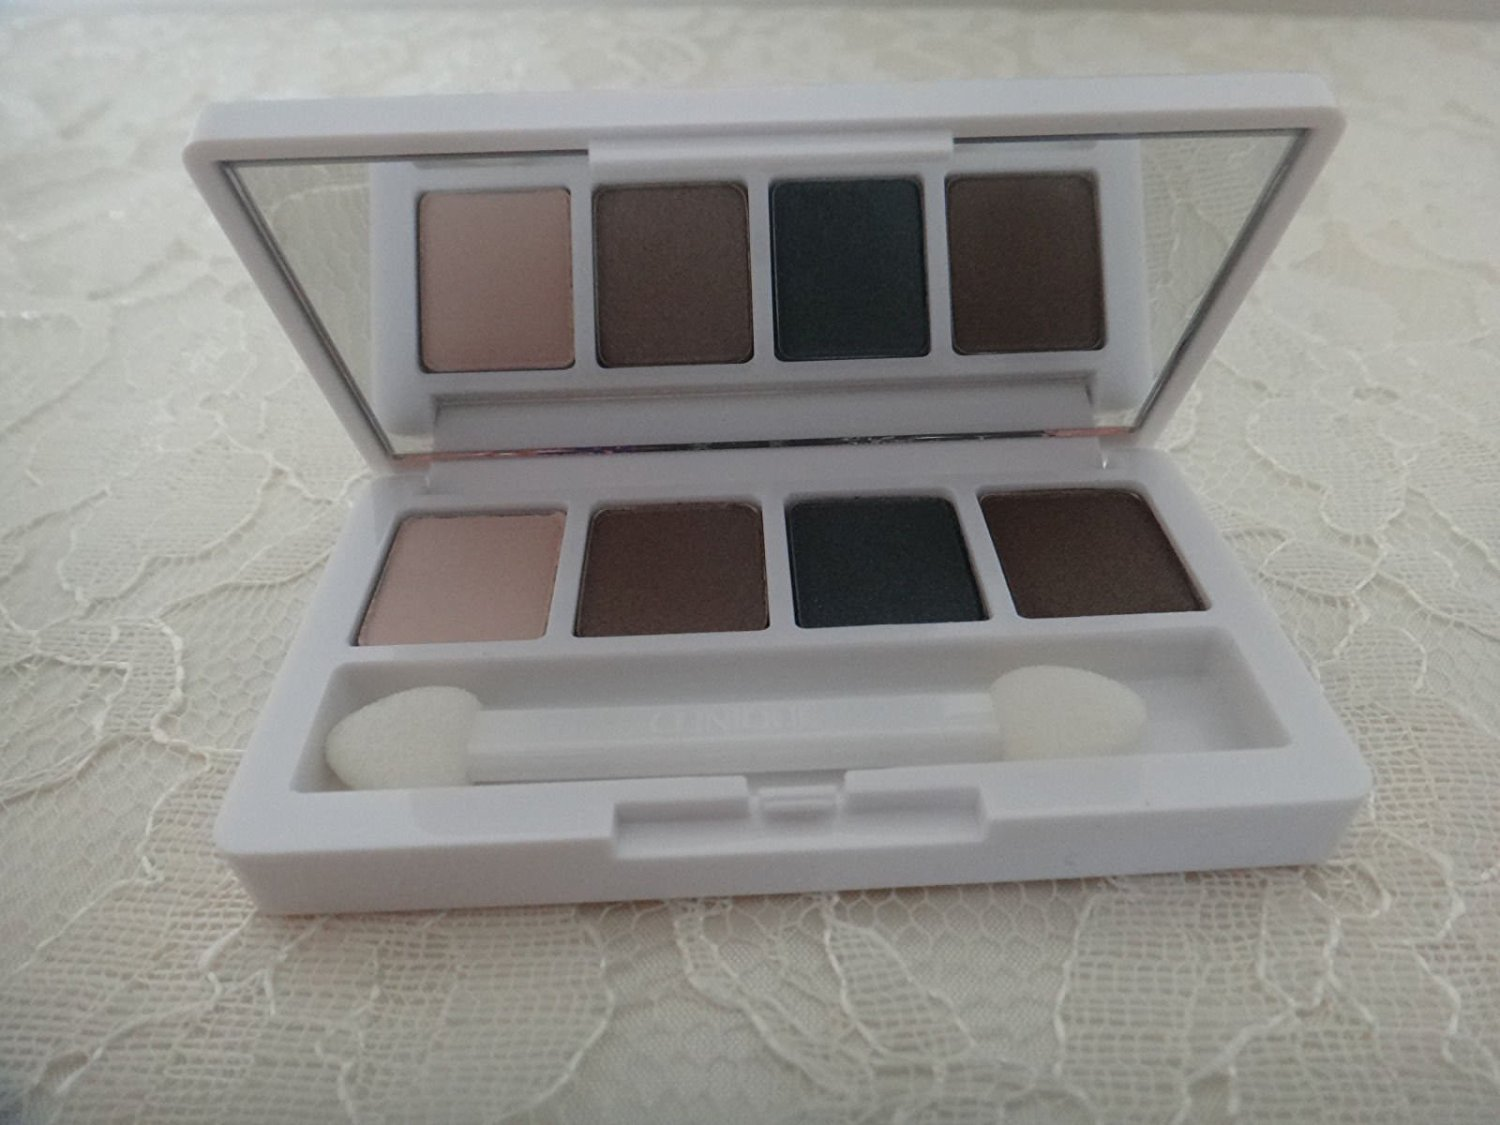 All About Shadow Quad - Jennas Essentials by Clinique #17